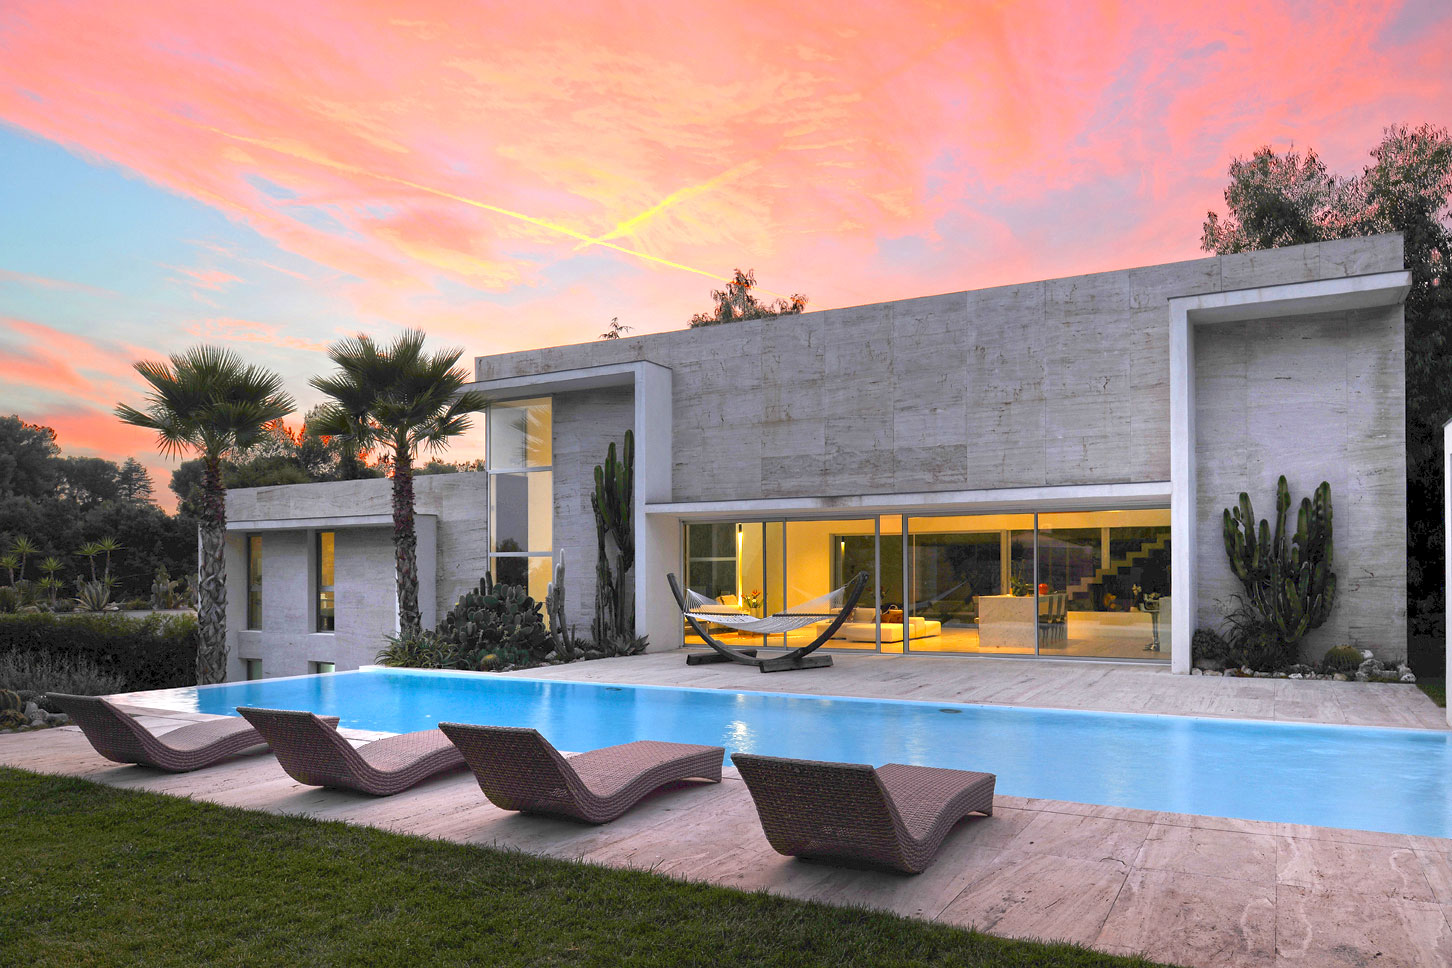 Sunloungers - Modern villa with pool